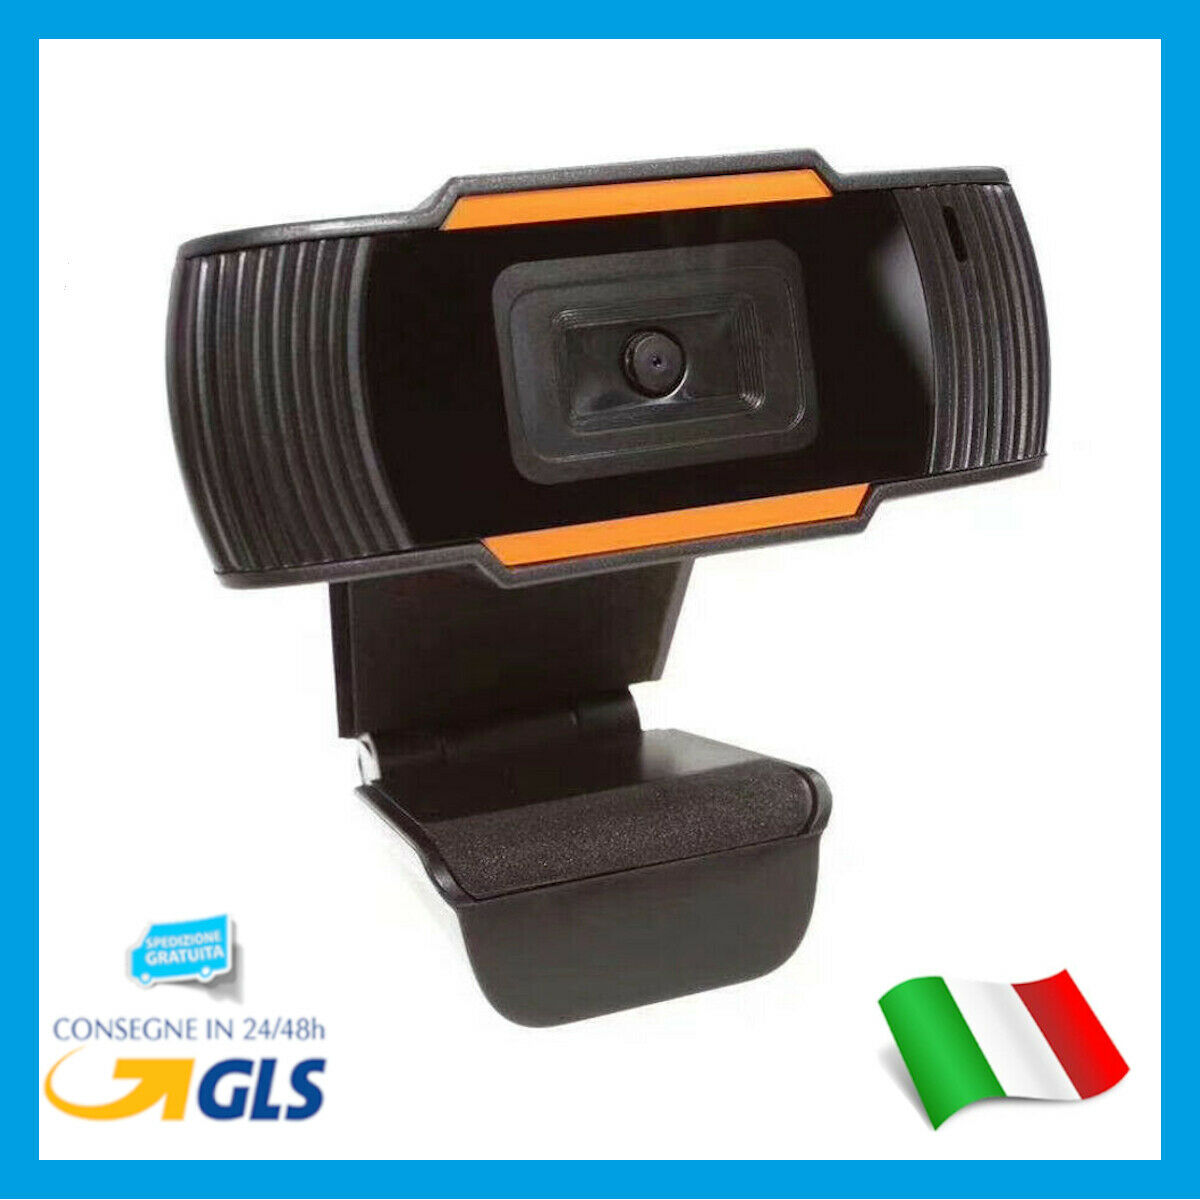 WEBCAM HD CON MICROFONO INTEGRATO SMART WORKING SKYPE VIDEO CAMERA PER PC